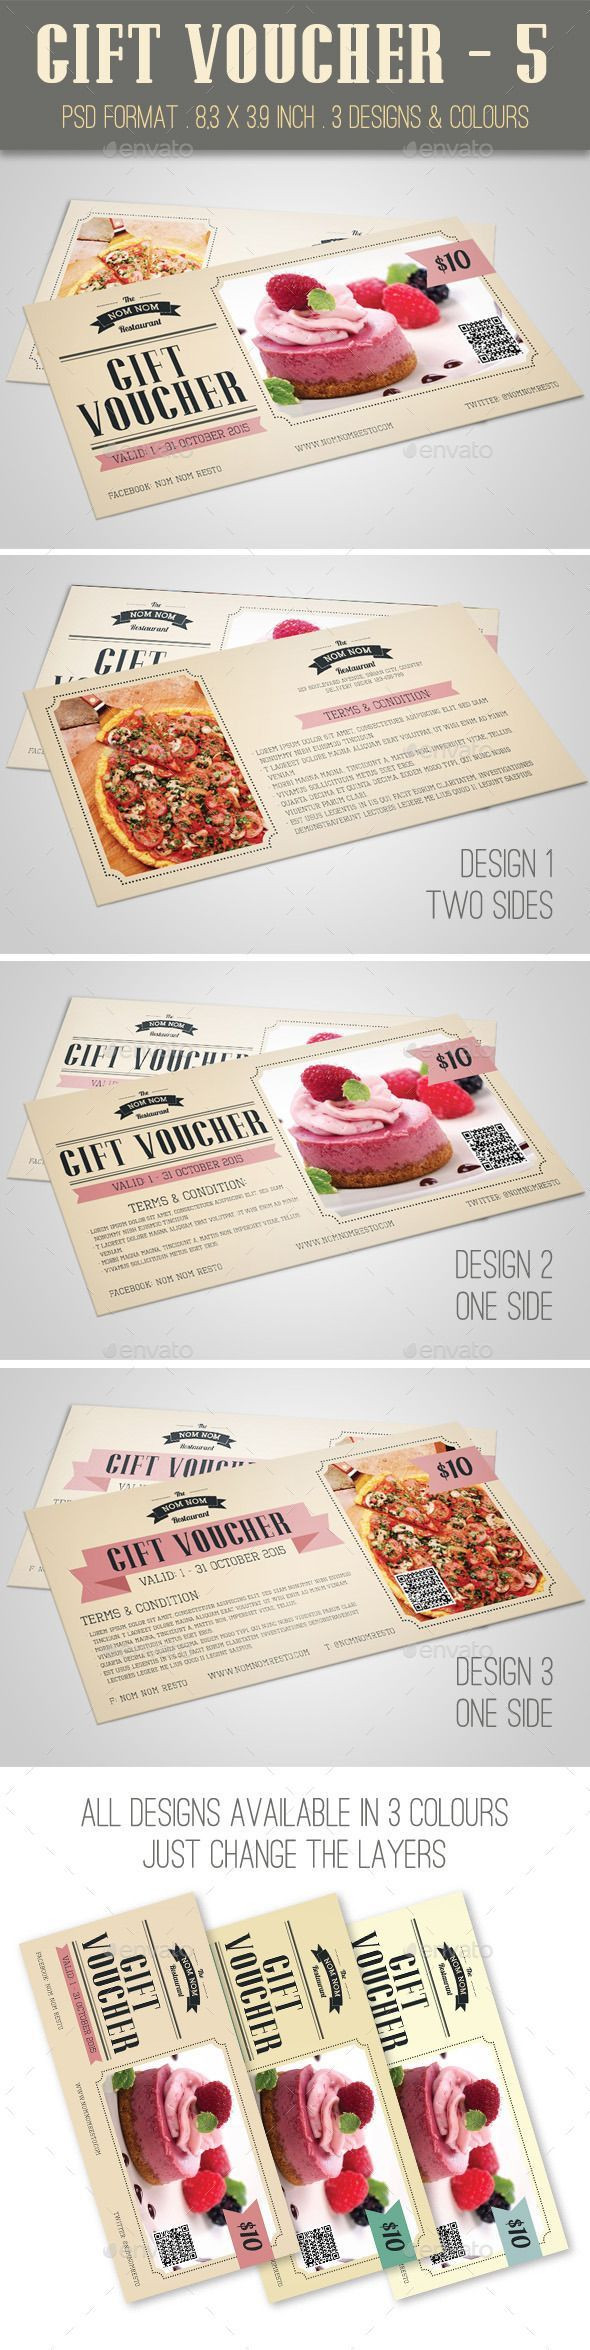 Best Nice Voucher Images On   Coupon Design Gift